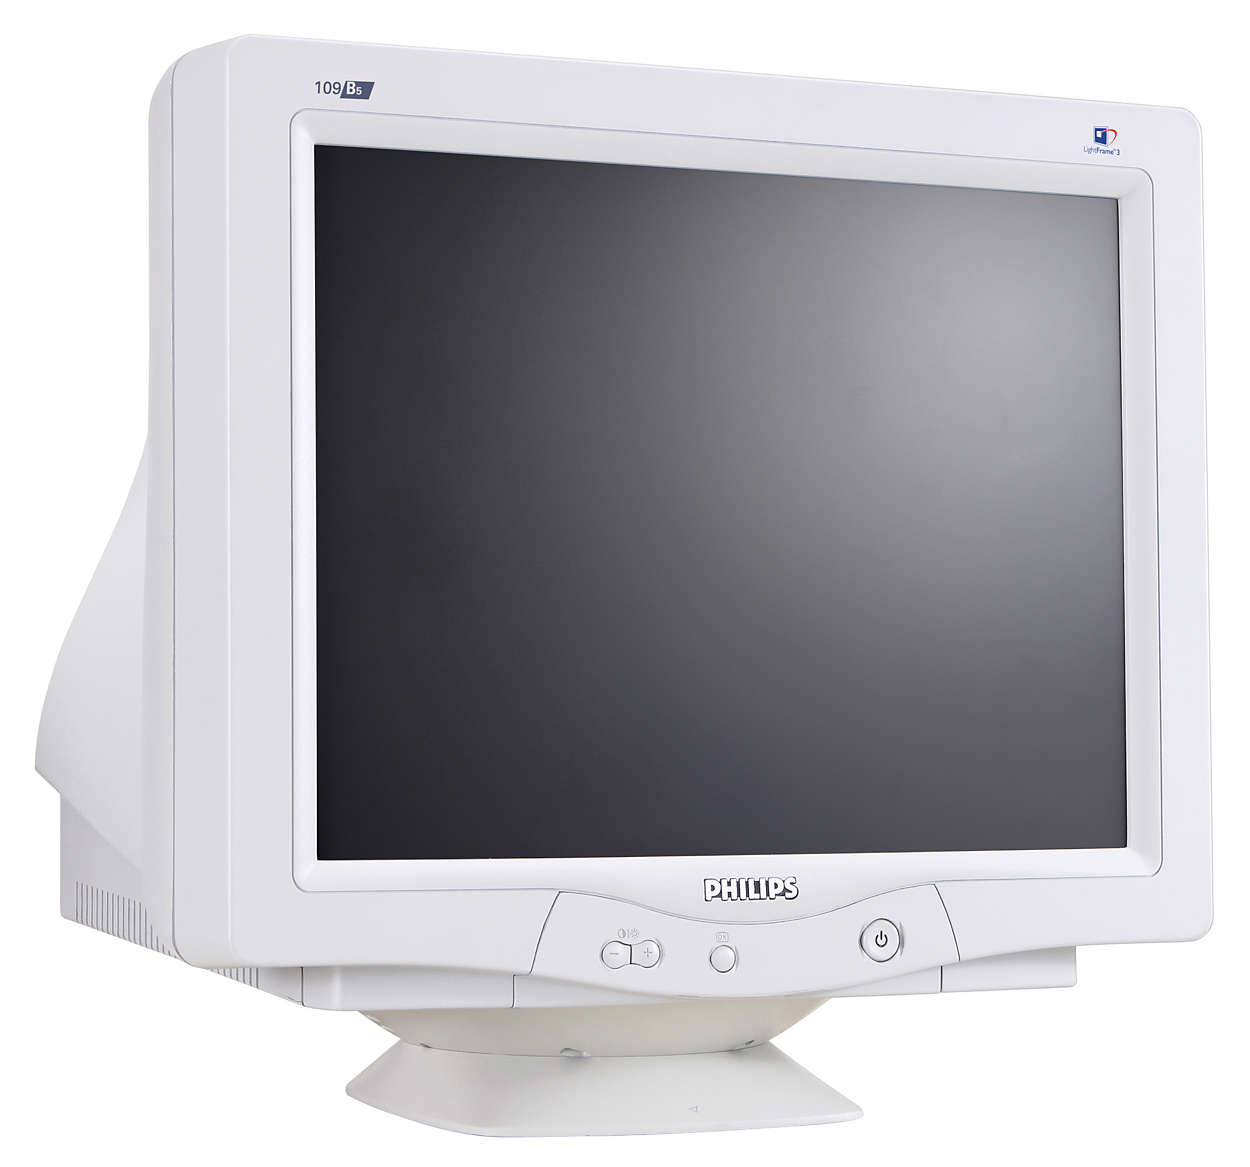 just-right CRT display for great computainment